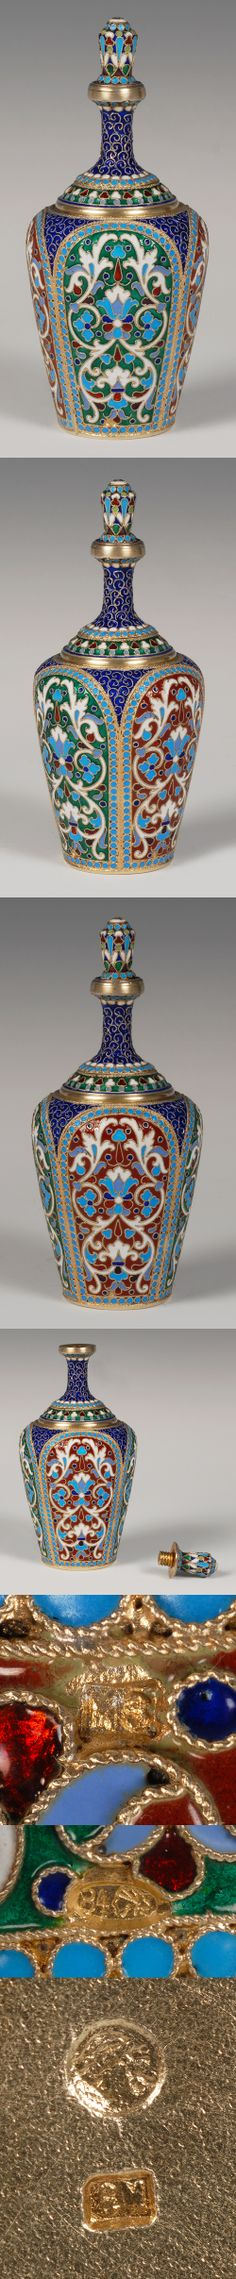 A Russian silver gilt and cloisonne enamel scent bottle, Nikolai Zverev, Moscow, circa 1896-1908. Of oval form with threaded stopper, the bottle decorated with scrolling floral and foliate motifs within a turquoise beaded border against alternating green and red ground panels